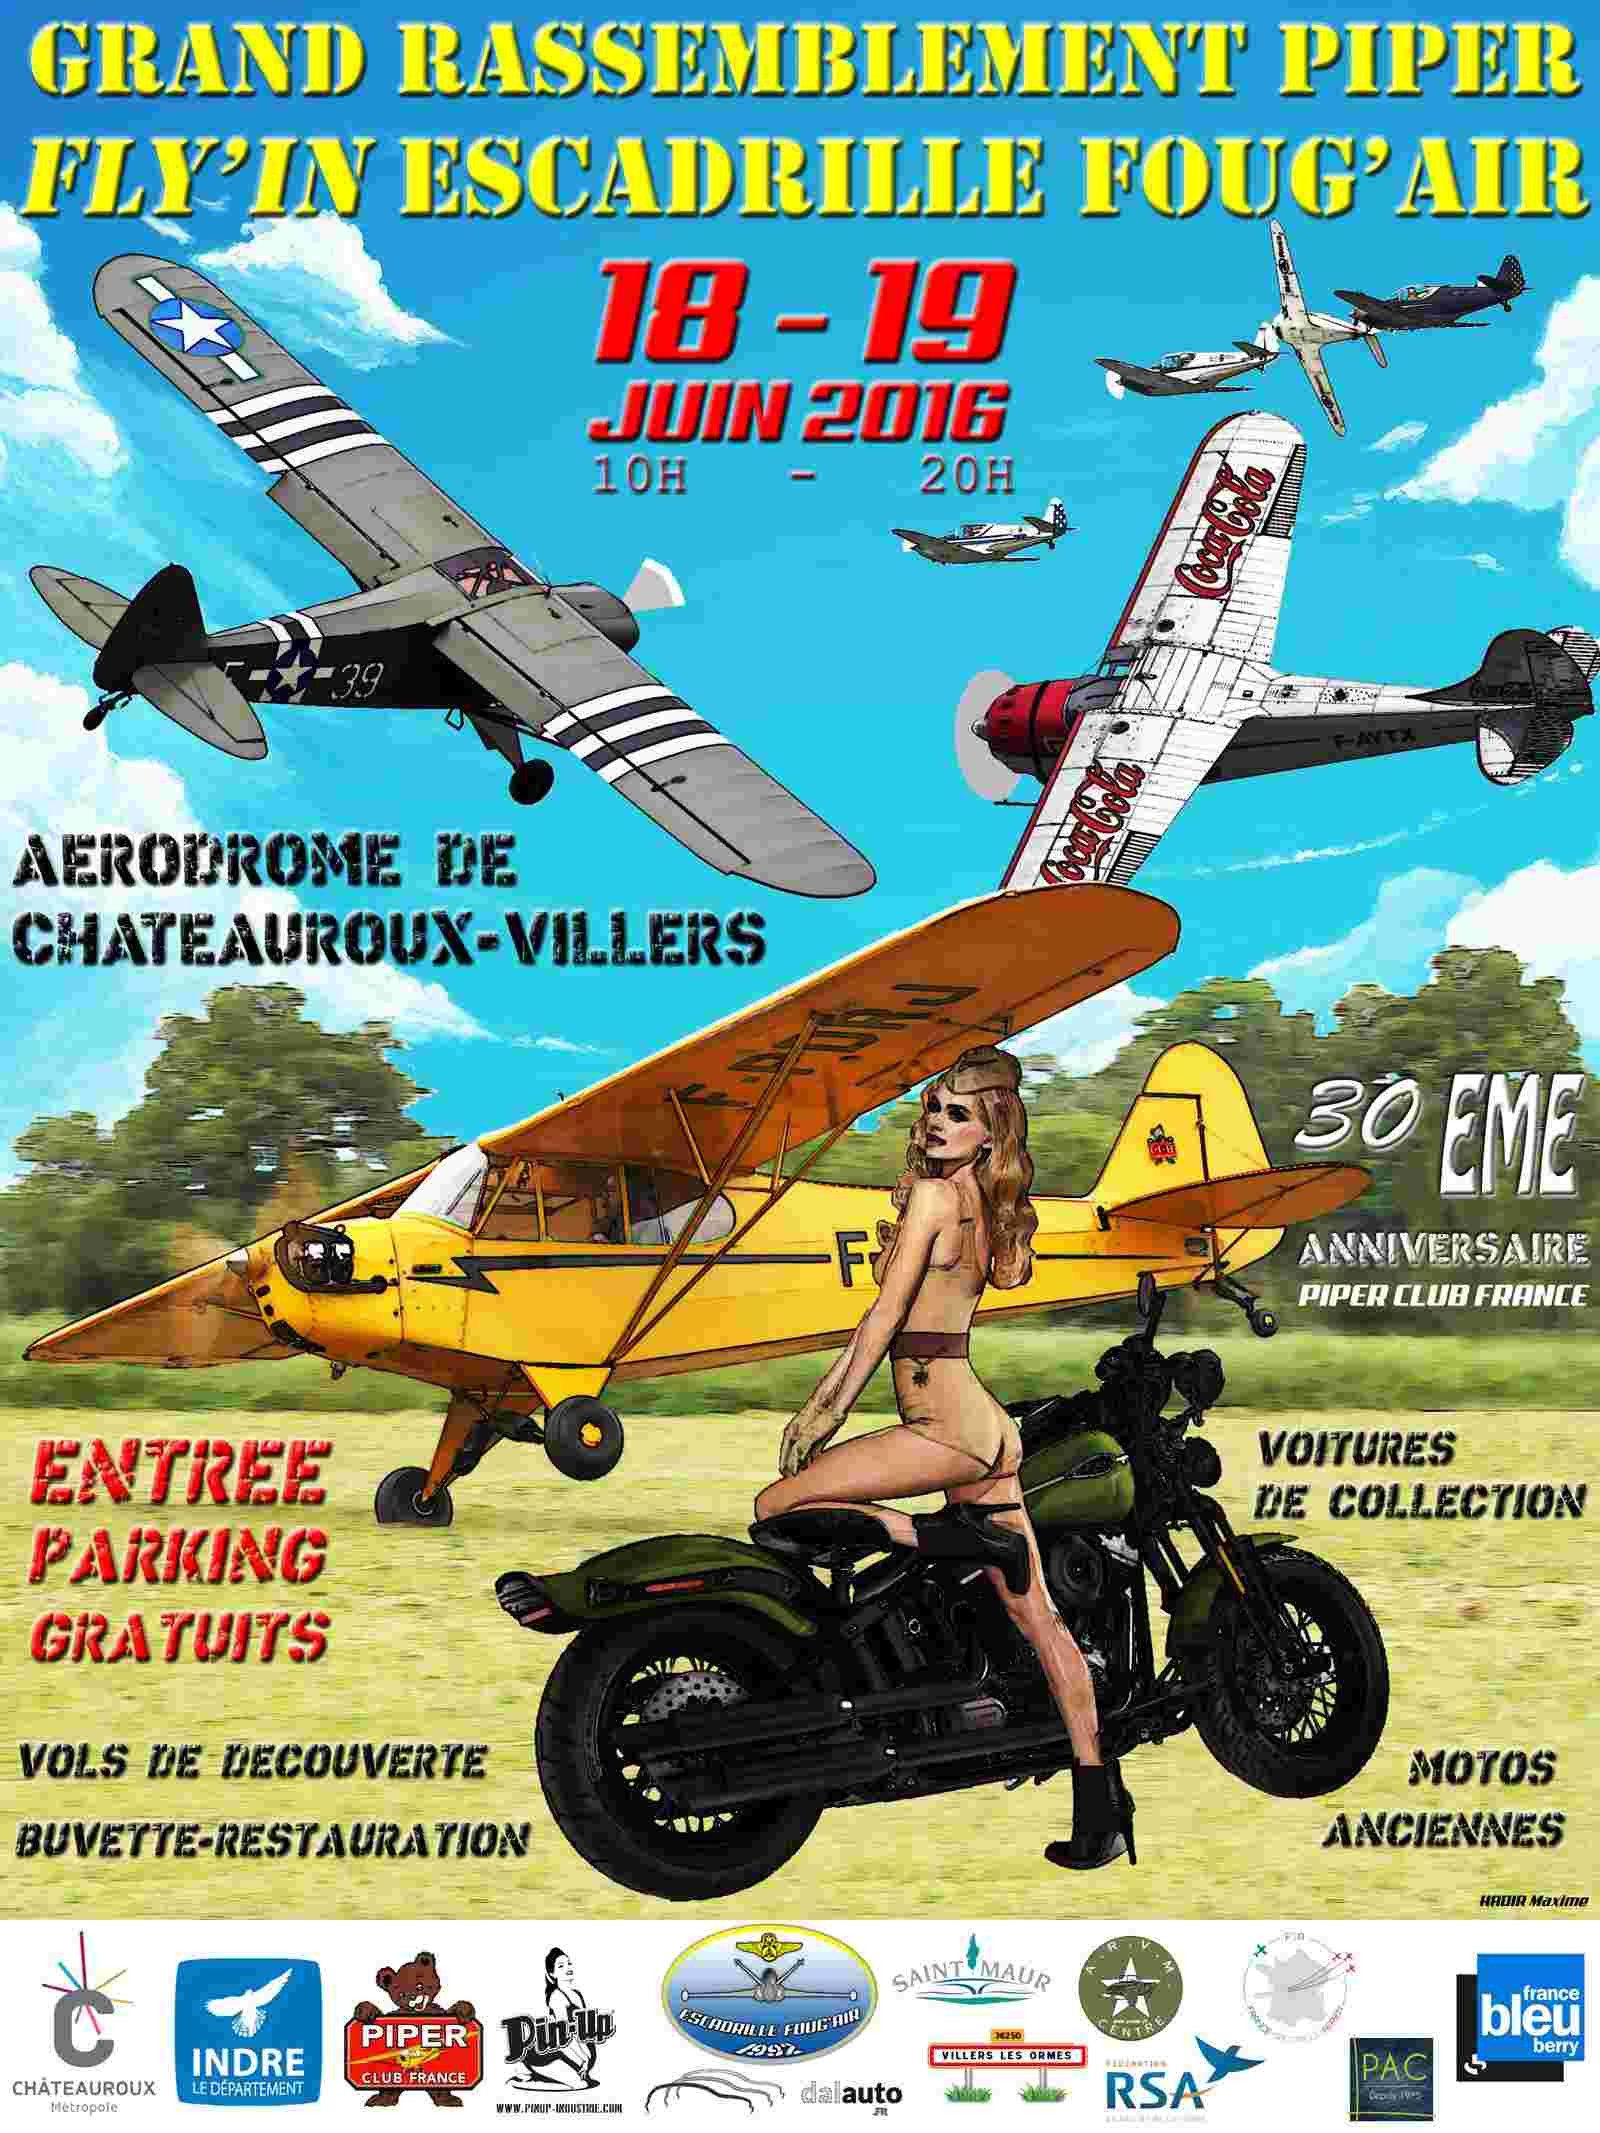 FLY-IN Escadrille Foug'Air 2016, 18-19 Juin Fête Aérienne Légend'Air,fly in 2016 ,Aerodrome de Chateauroux, Meeting Aerien 2016,Airshow 2016, French Airshow 2016